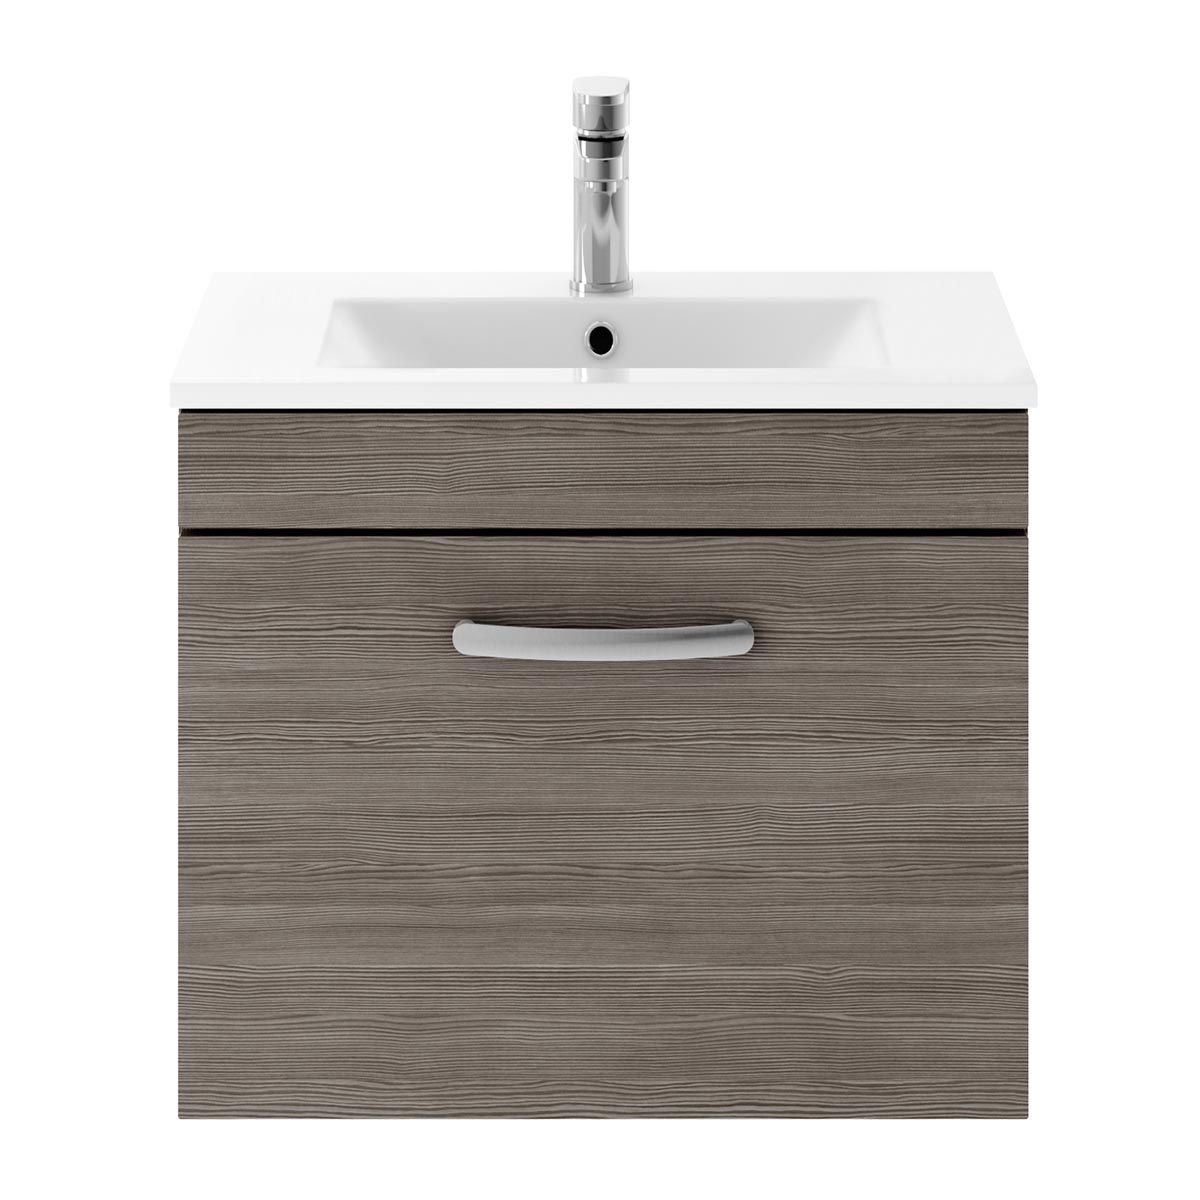 Nuie Athena Grey Avola 1 Drawer Wall Hung Vanity Unit with 18mm Profile Basin 600mm